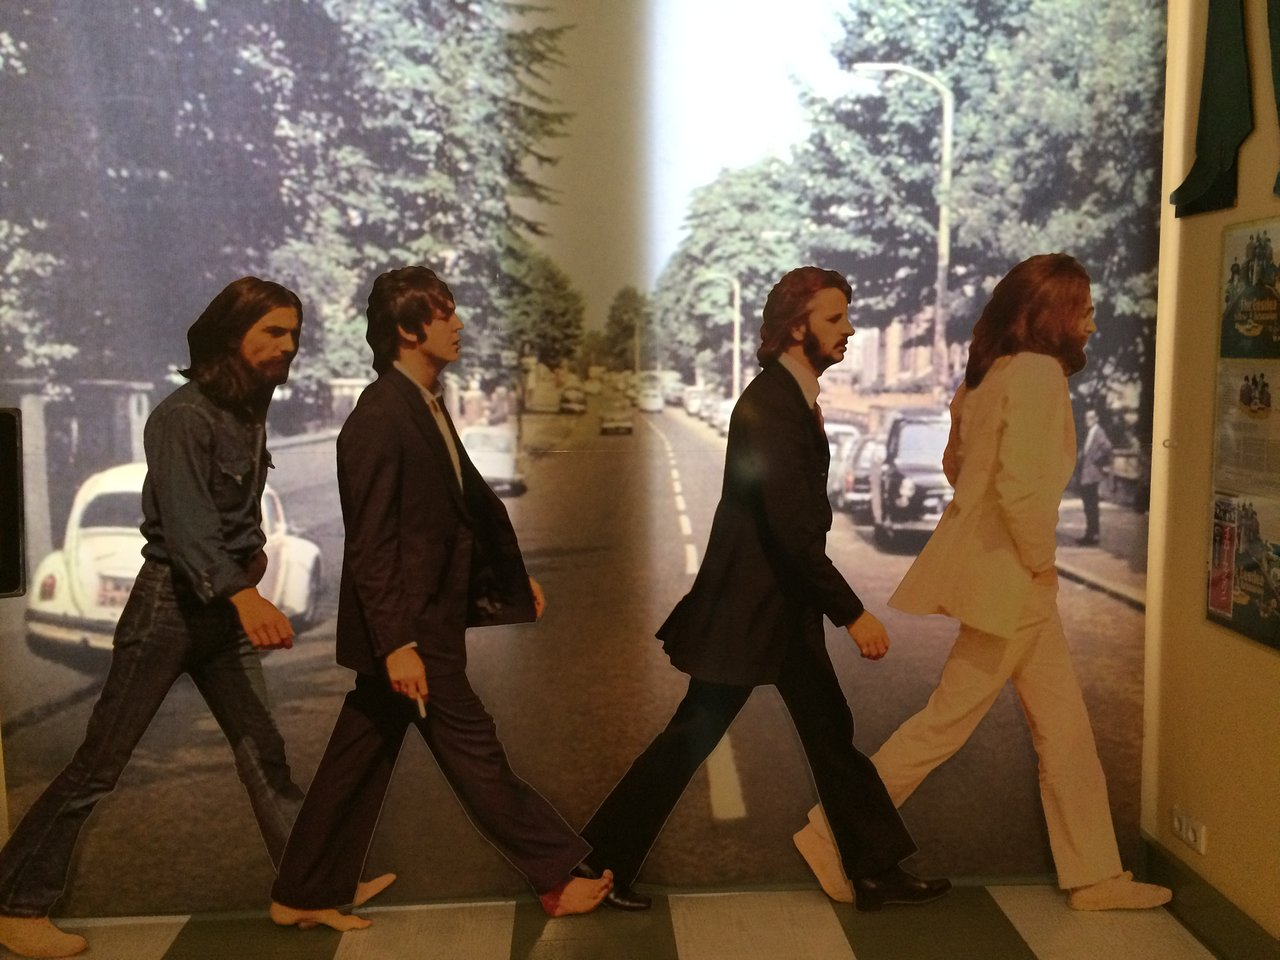 Himalaya Halle Beatles Museum (halle (saale)) - 2021 All You Need To Know Before You Go (with Photos) - Halle (saale), Germany | Tripadvisor